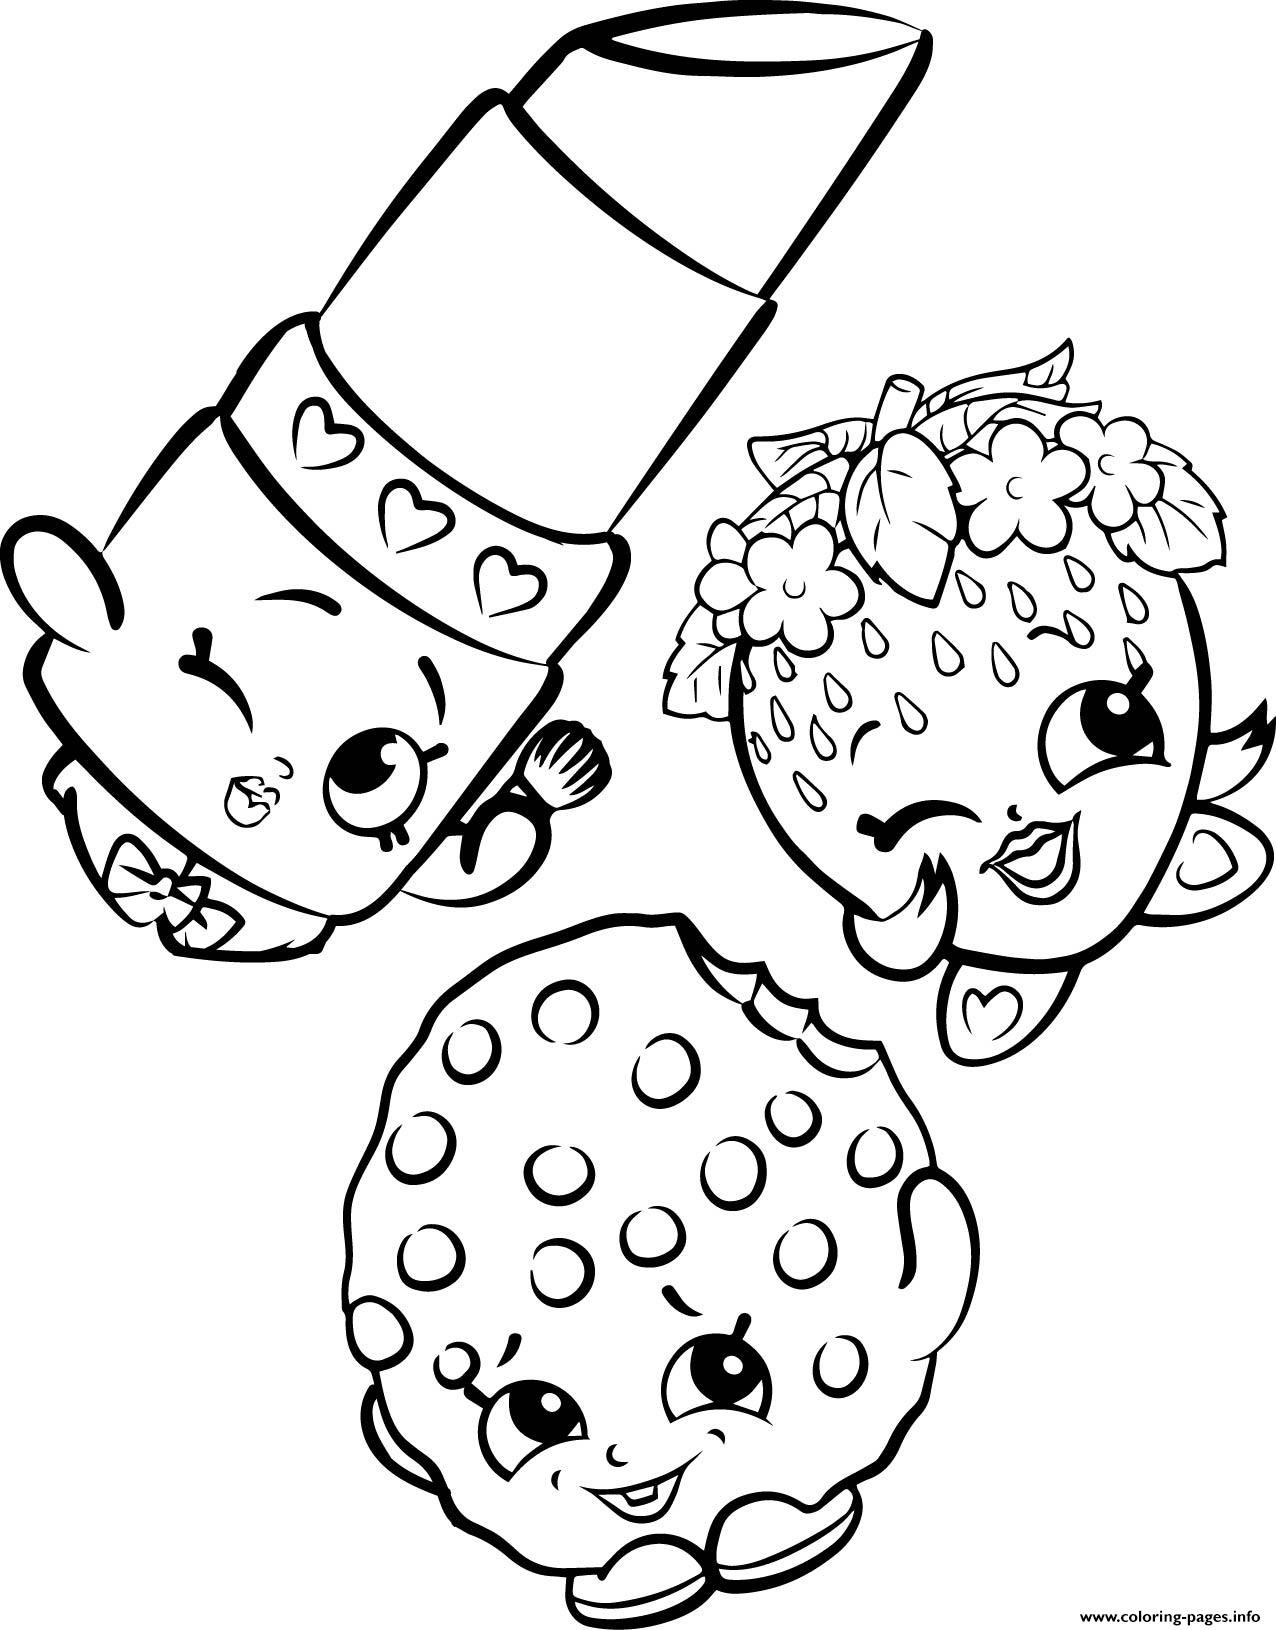 Print free shopkins strawberry lipstick cookie coloring pages